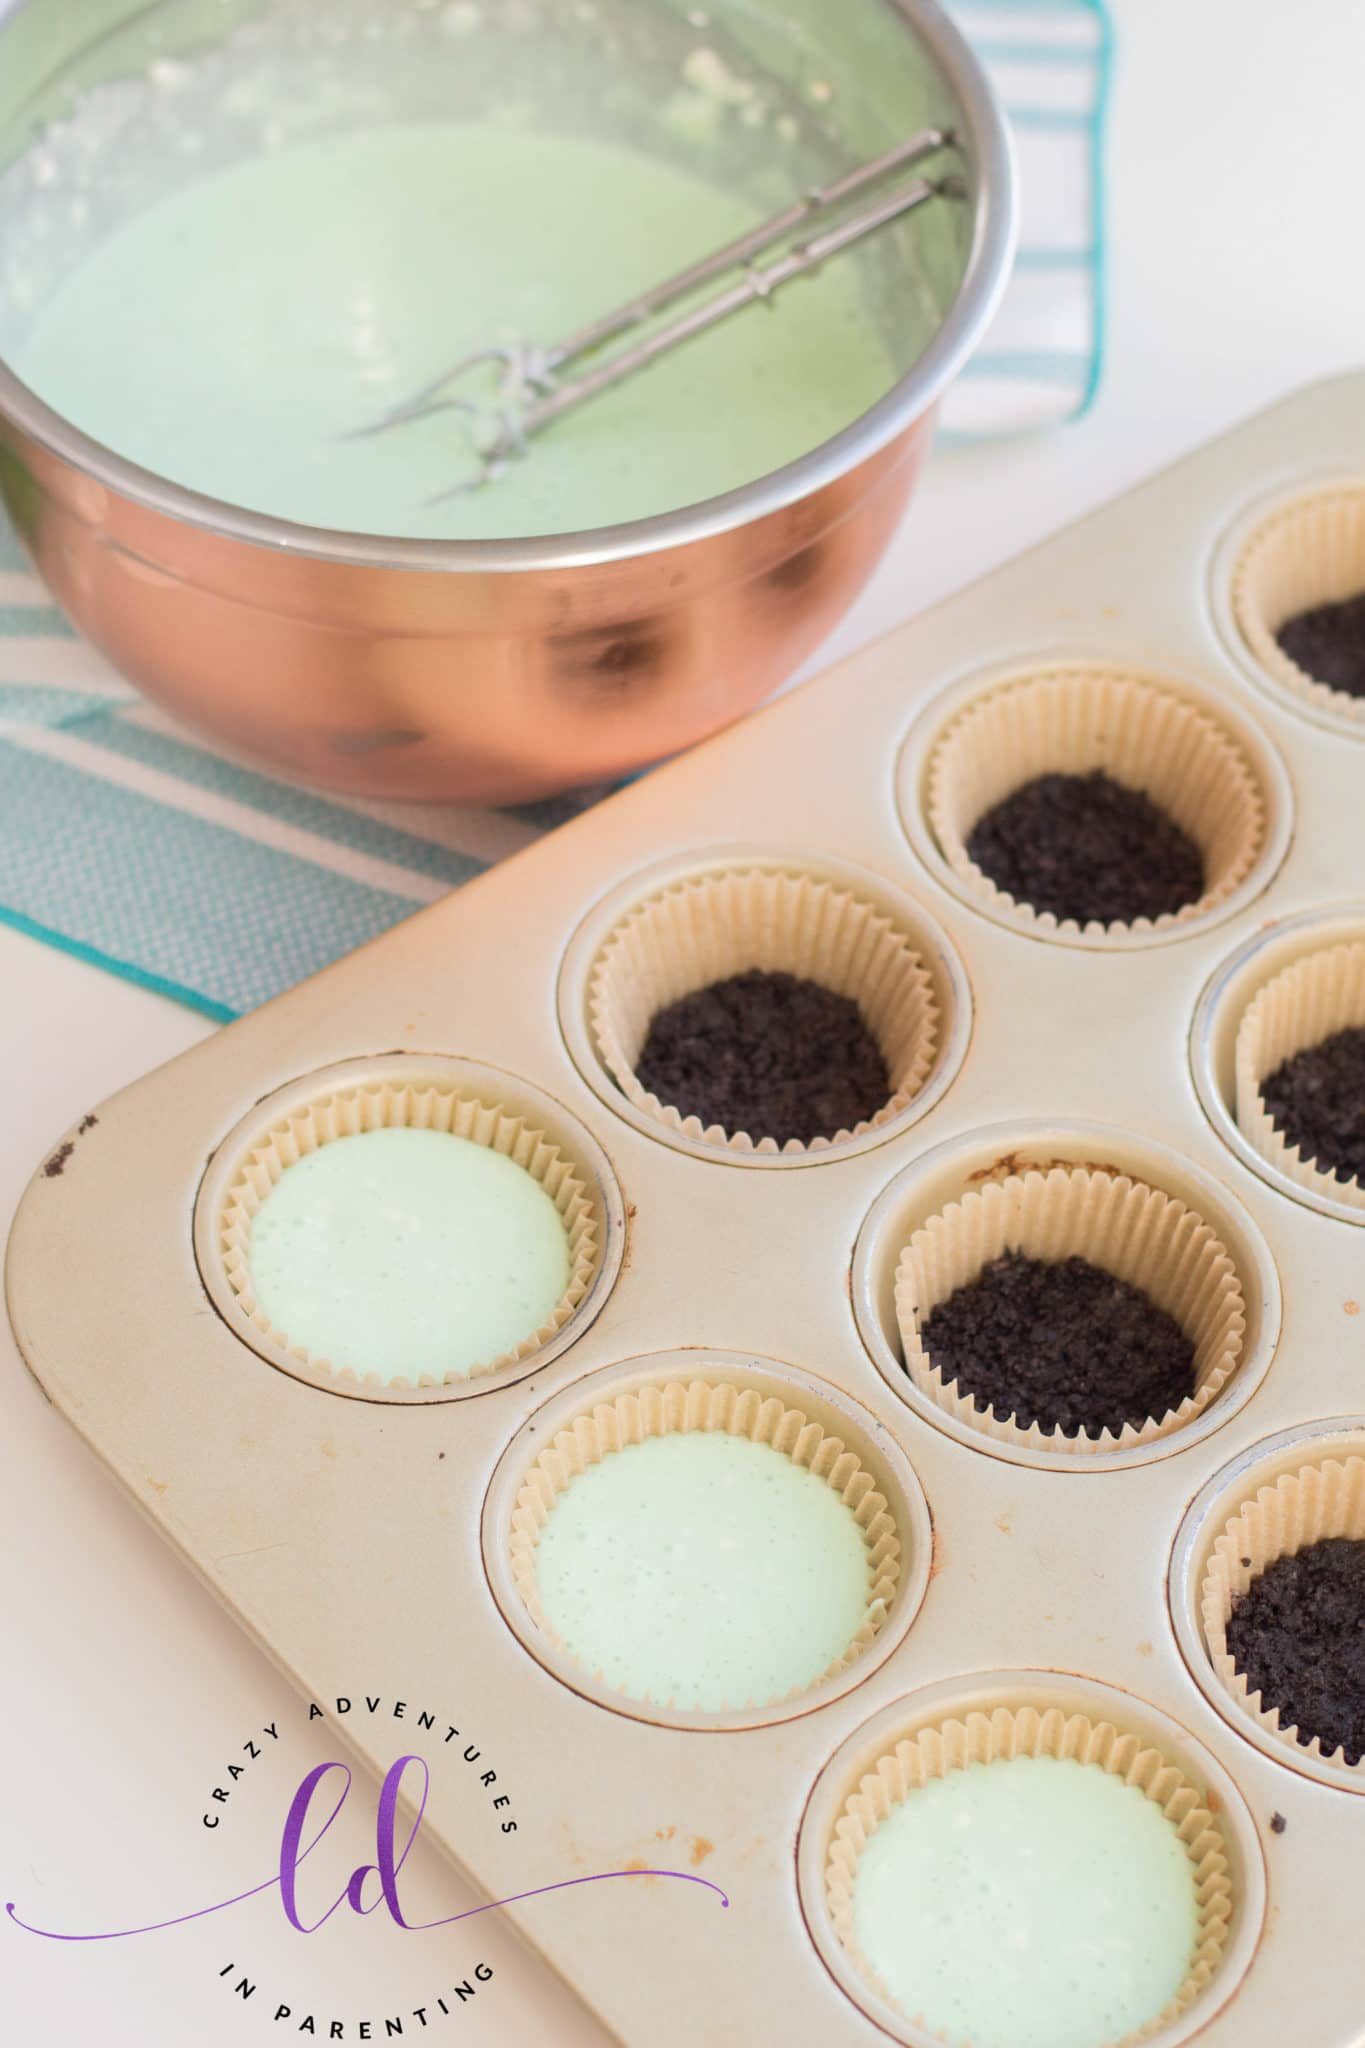 Add Cheesecake Filling to Muffin Pans to Make St. Patrick's Day Mini Cheesecakes